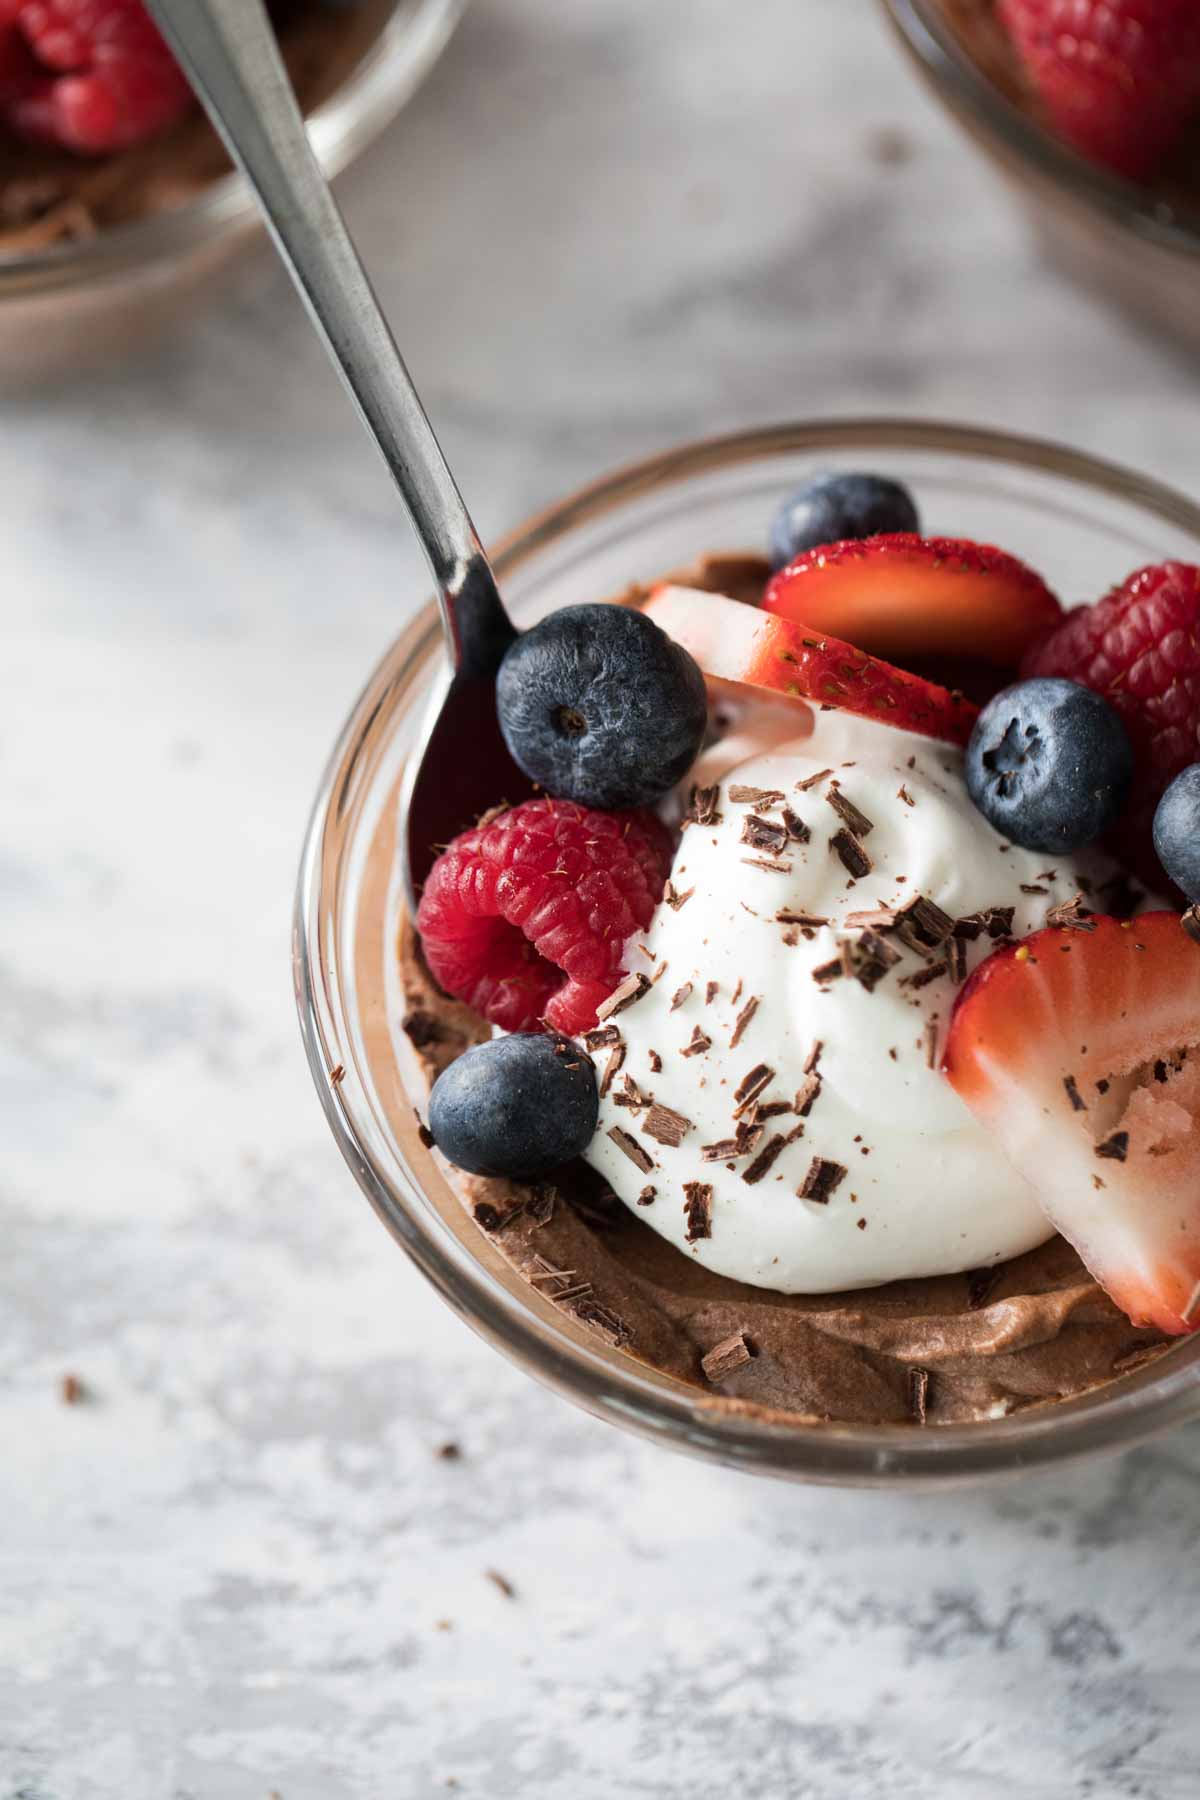 overhead view of chocolate mousse topped with whipped cream and berries